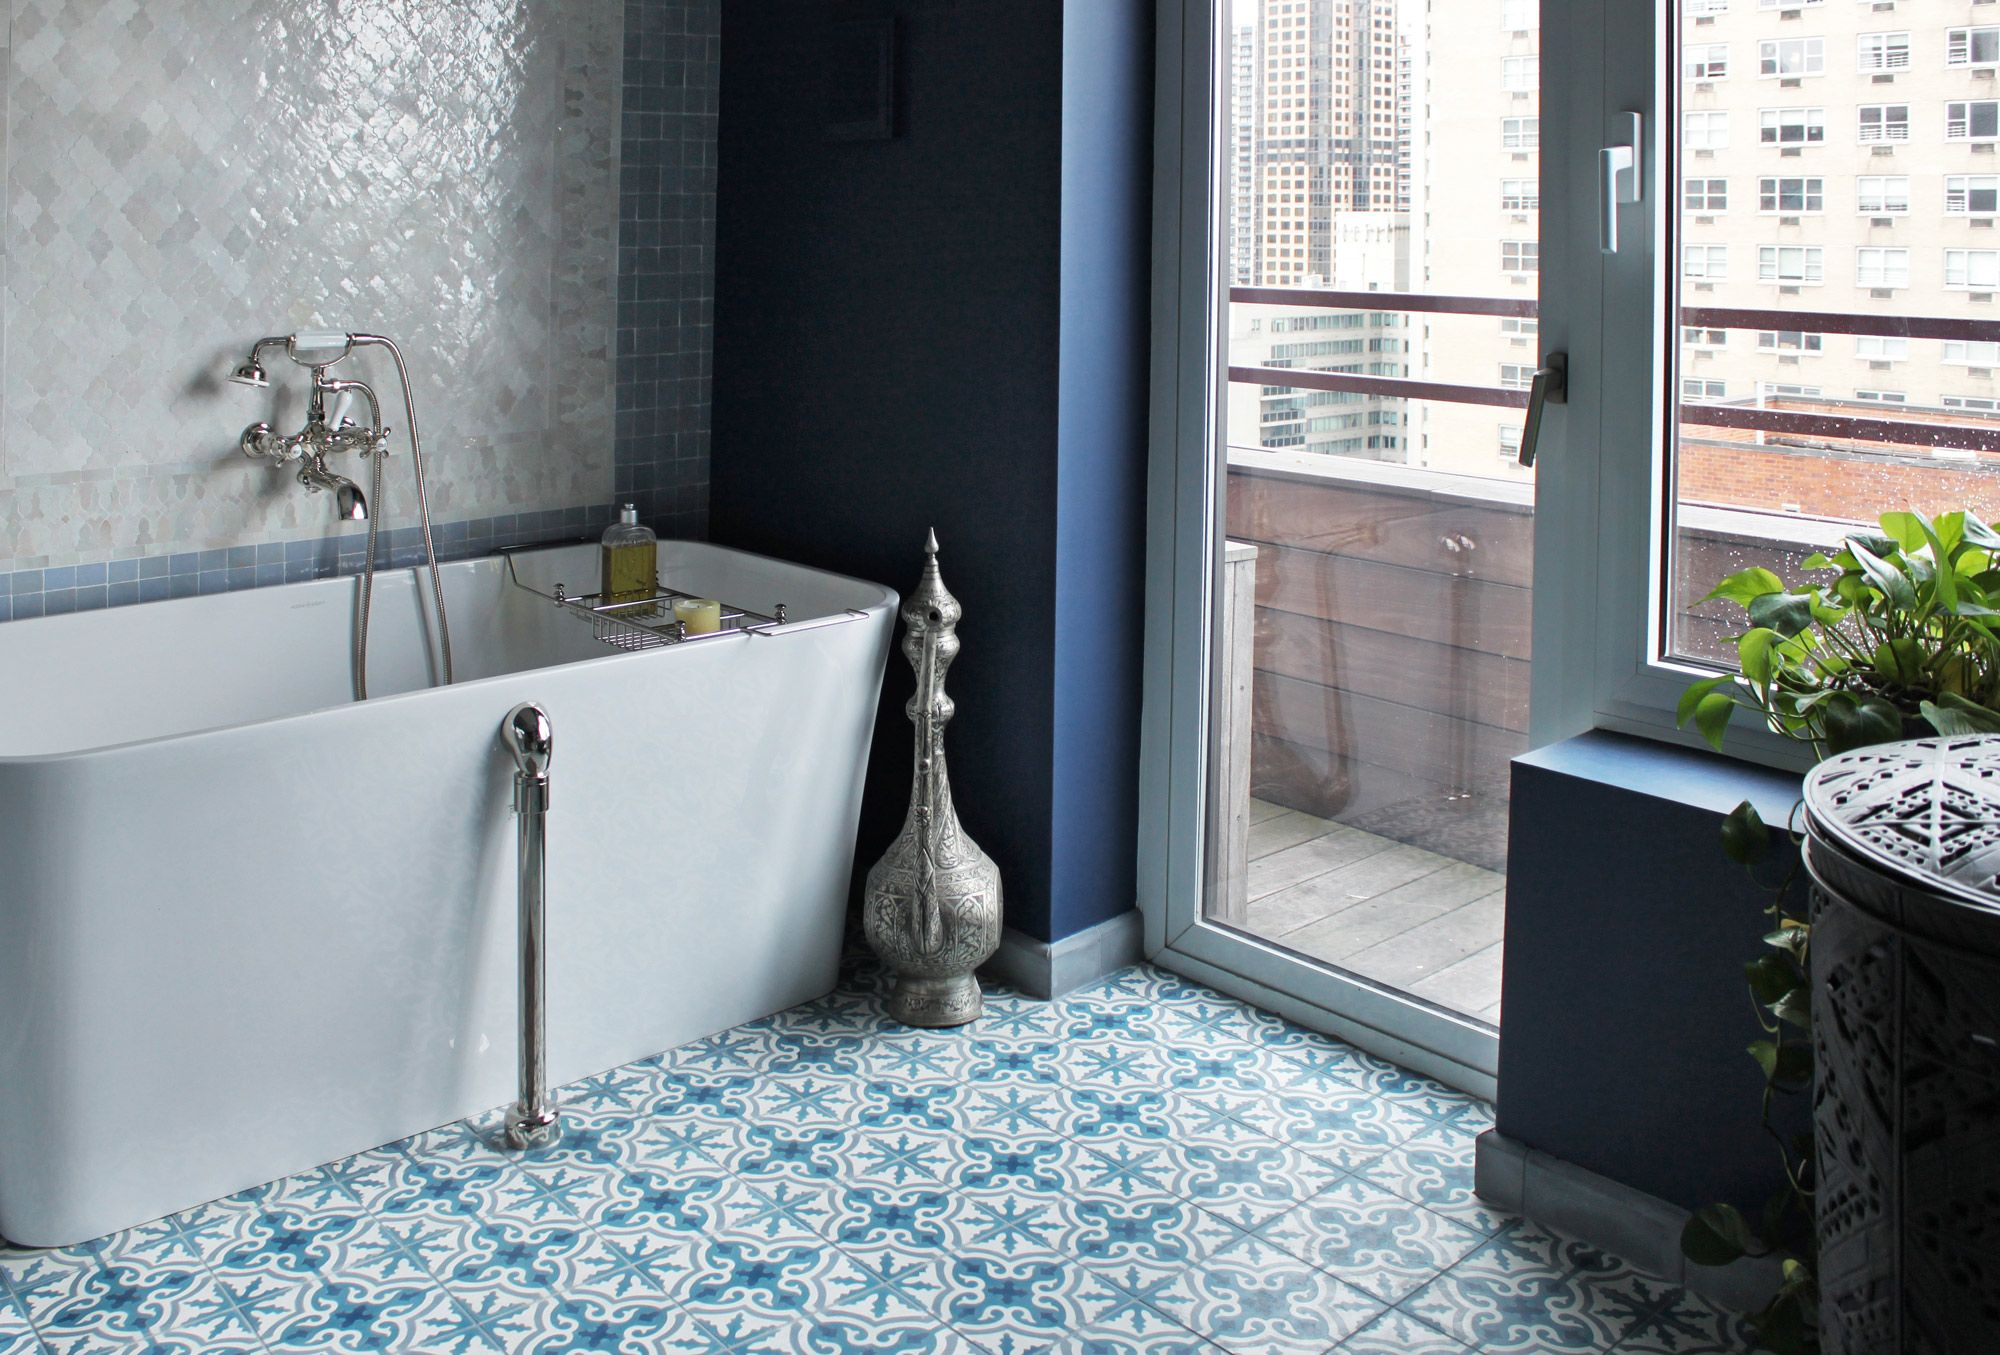 10 Gorgeous Ways to Do Patterned Tile in the Bathroom | Tubs, Cement ...